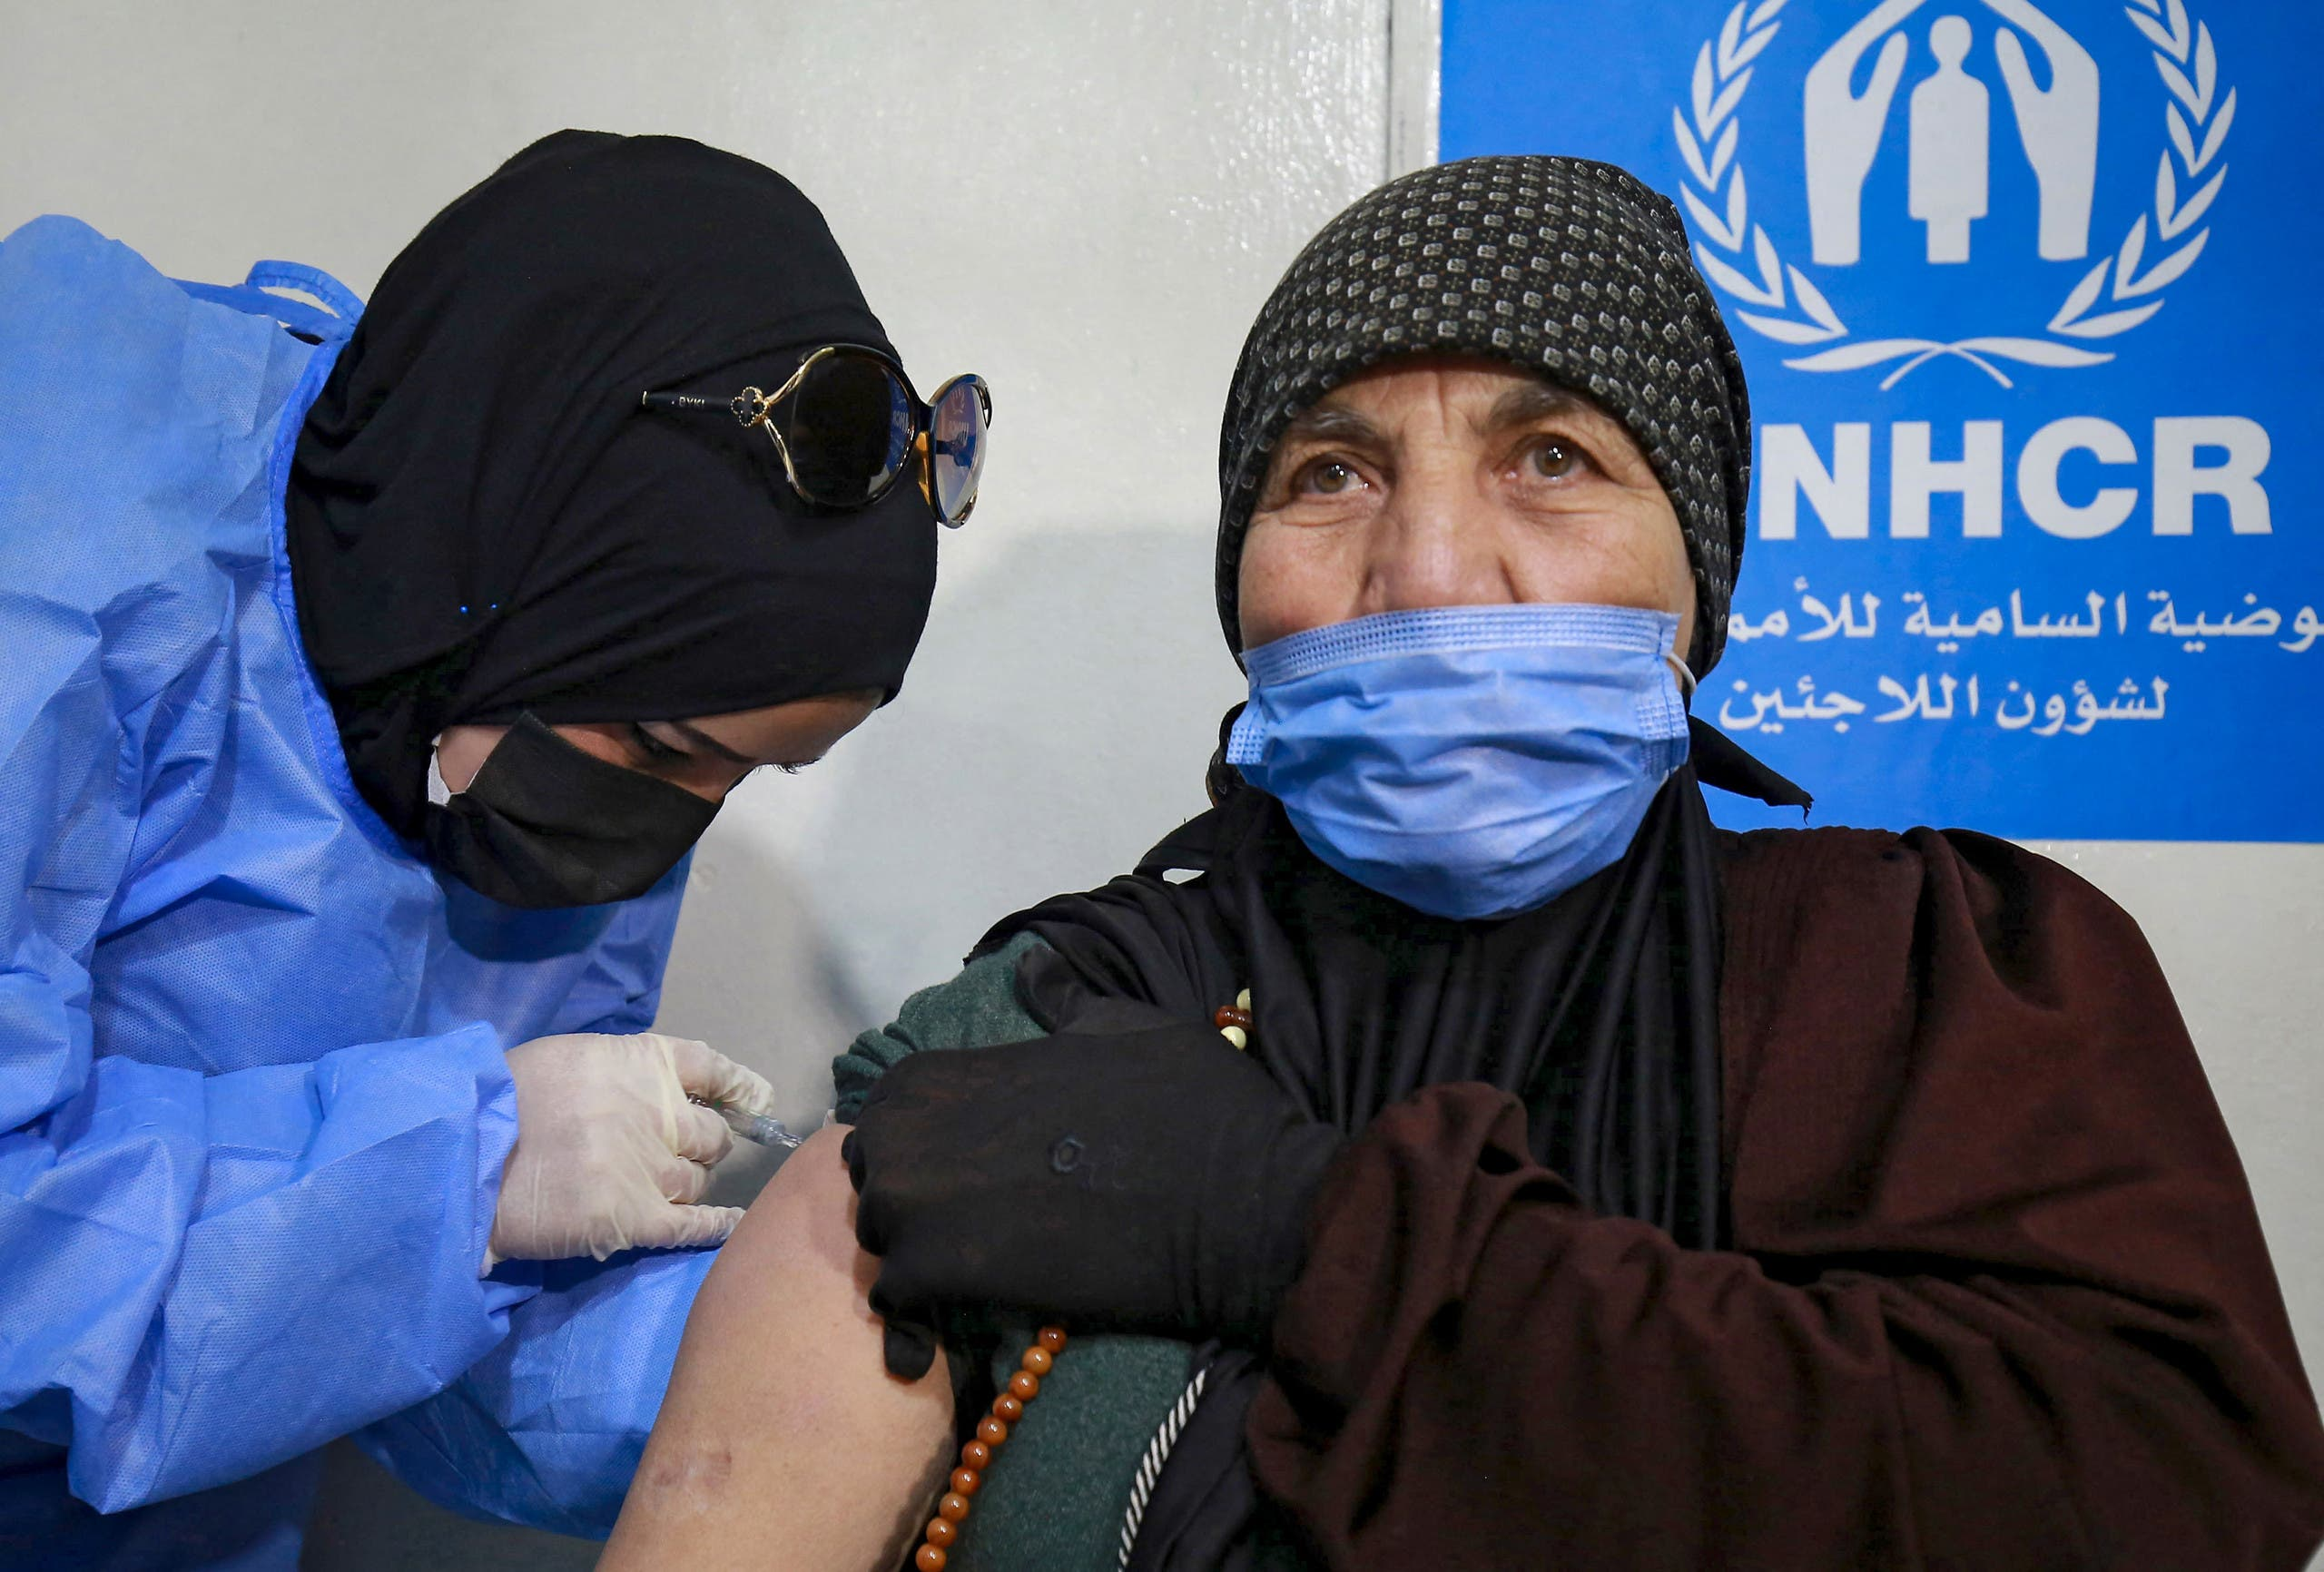 A Syrian refugee receives the Coronavirus vaccine, at a medical center in the Zaatari refugee camp, 80 kilometers (50 miles) north of the Jordanian capital Amman on February 15, 2021. (File photo: AFP)